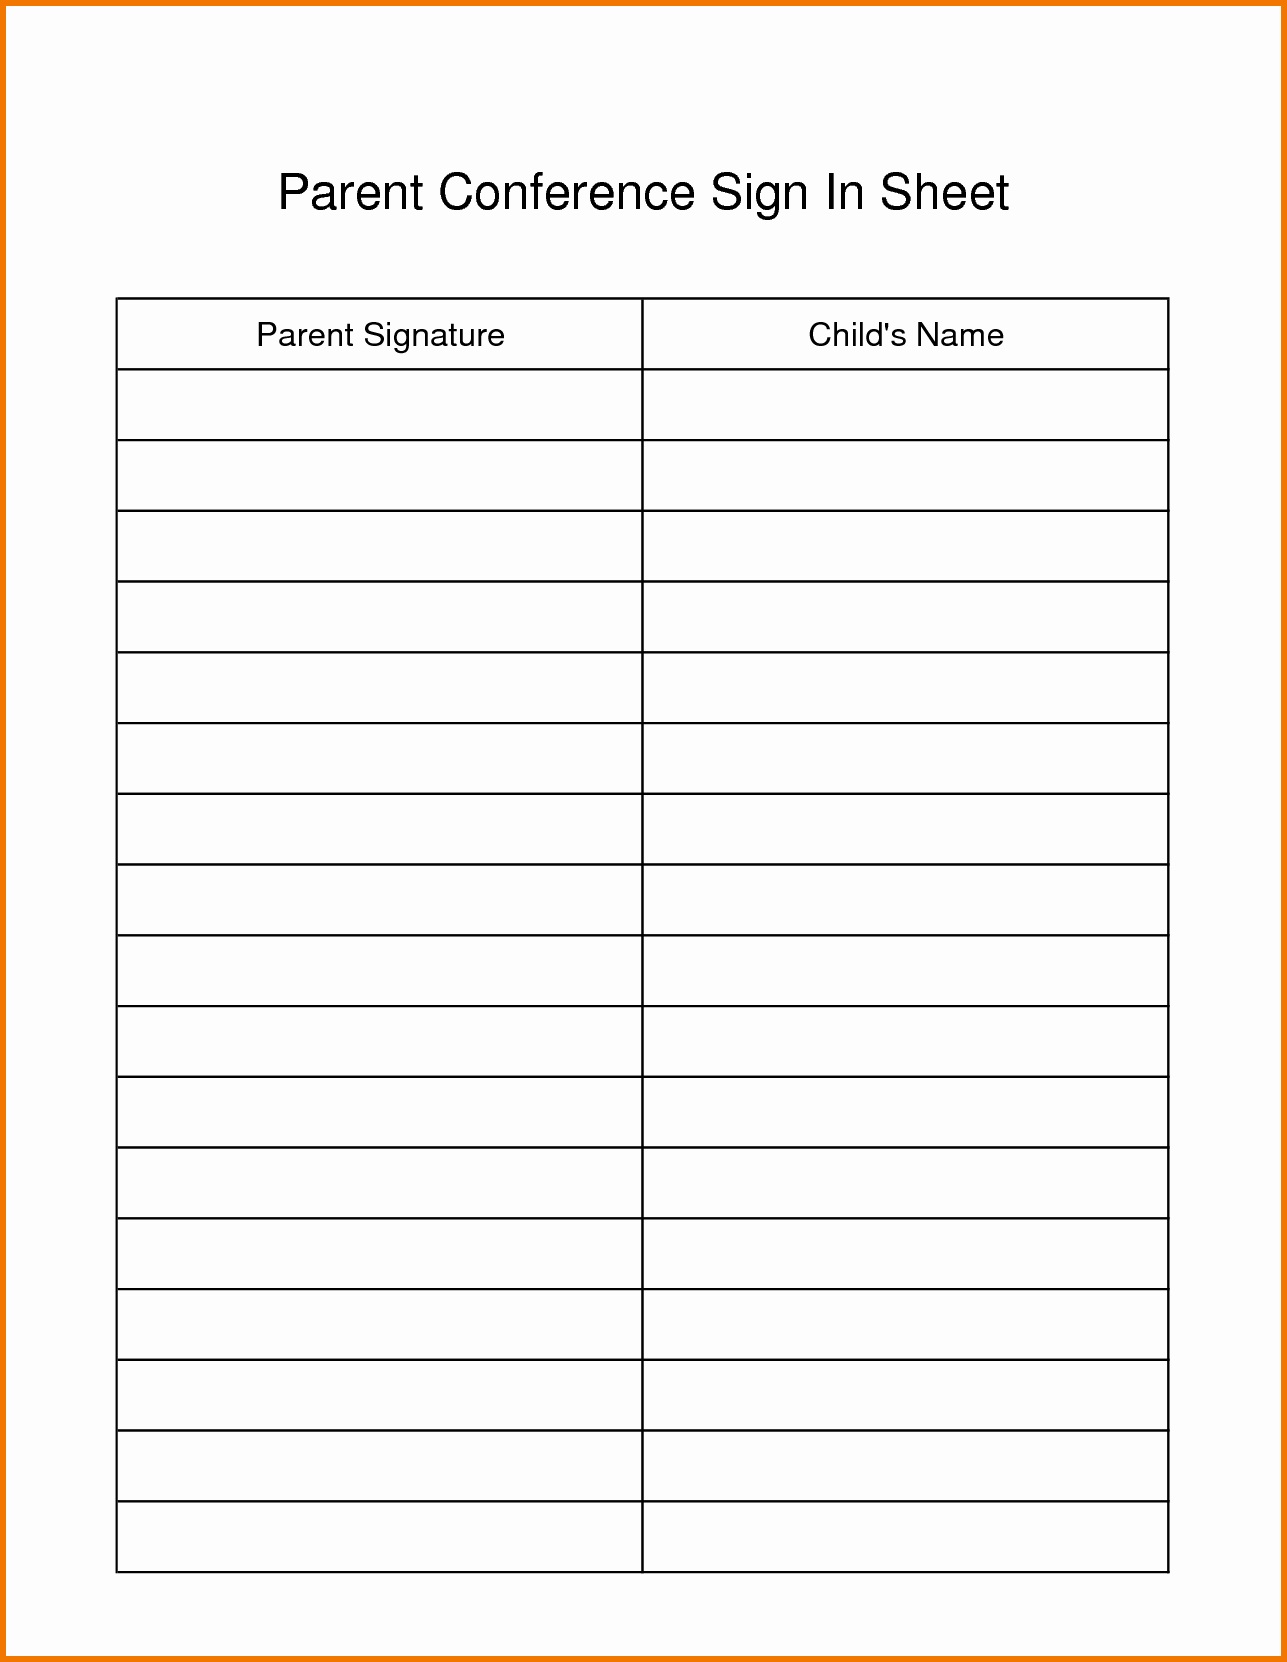 Conference Sign In Sheet Template Elegant Club Sign In Sheet Template Portablegasgrillweber